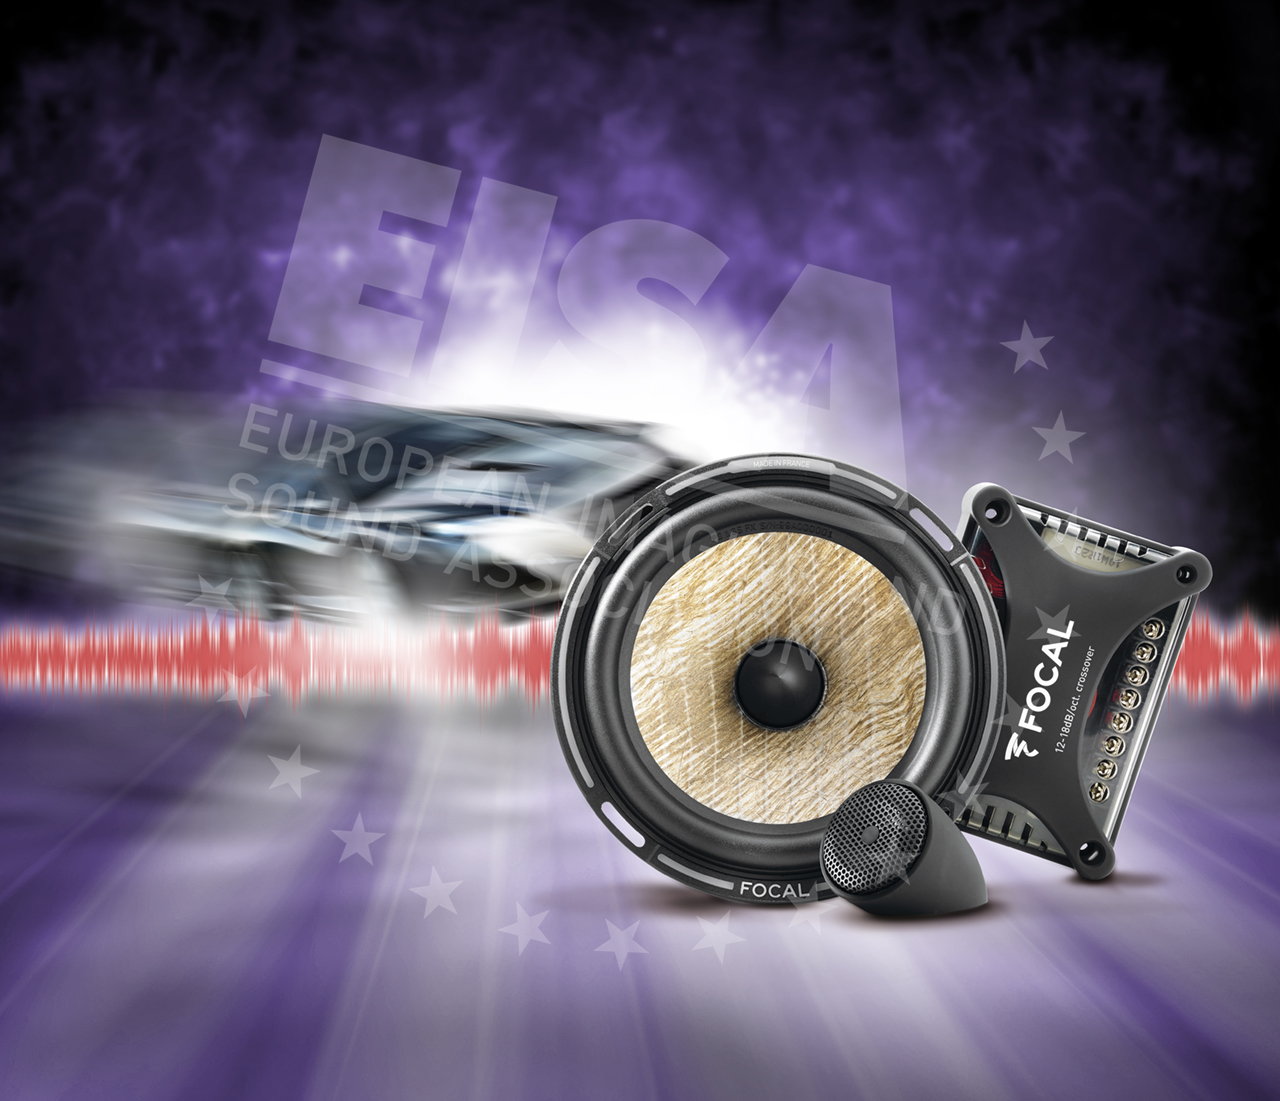 focal-ps-165fxjpg.jpg